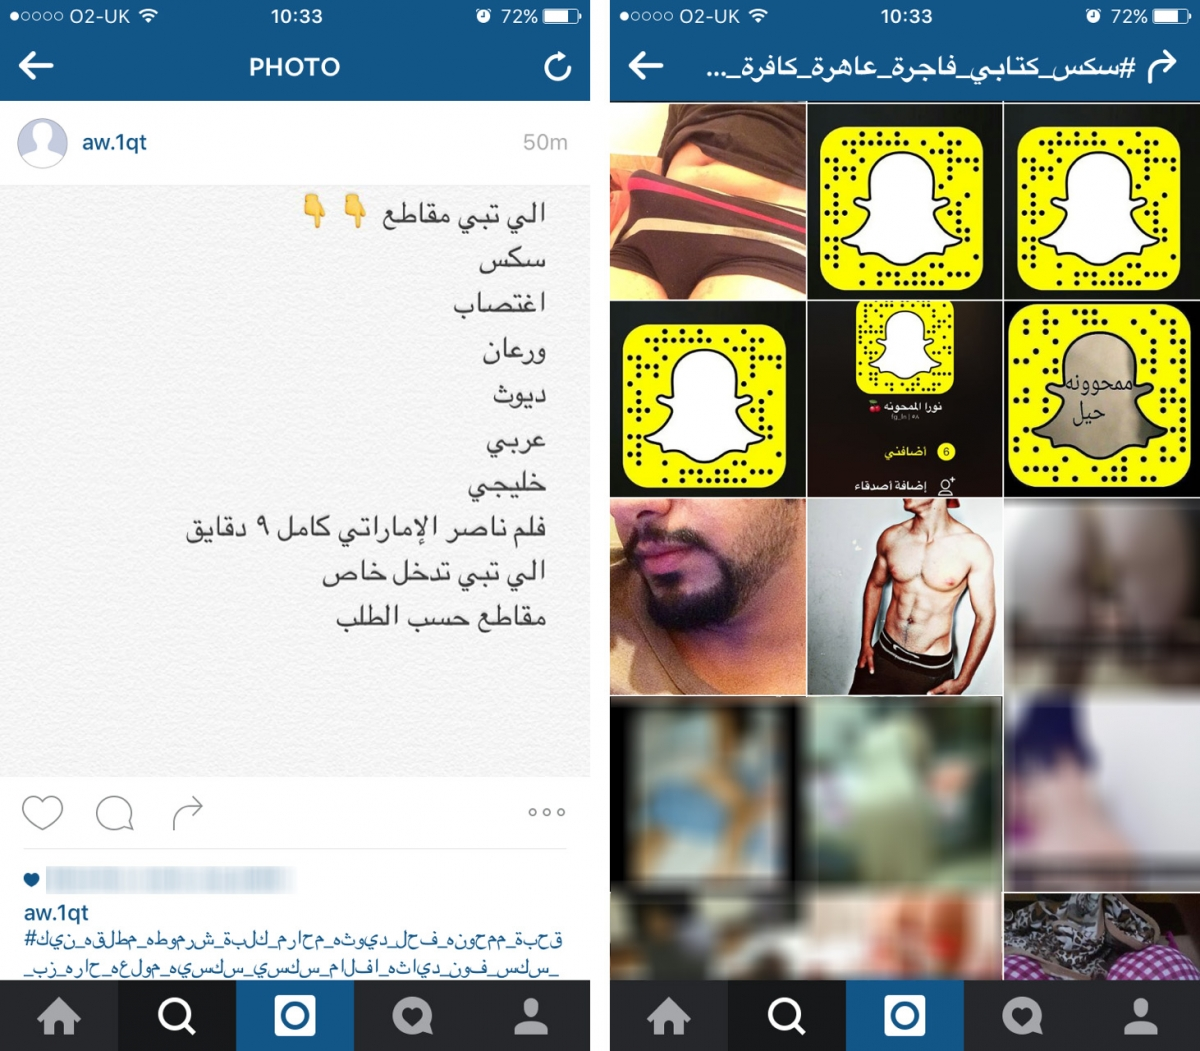 Arabic hashtags to locate porn on Instagram